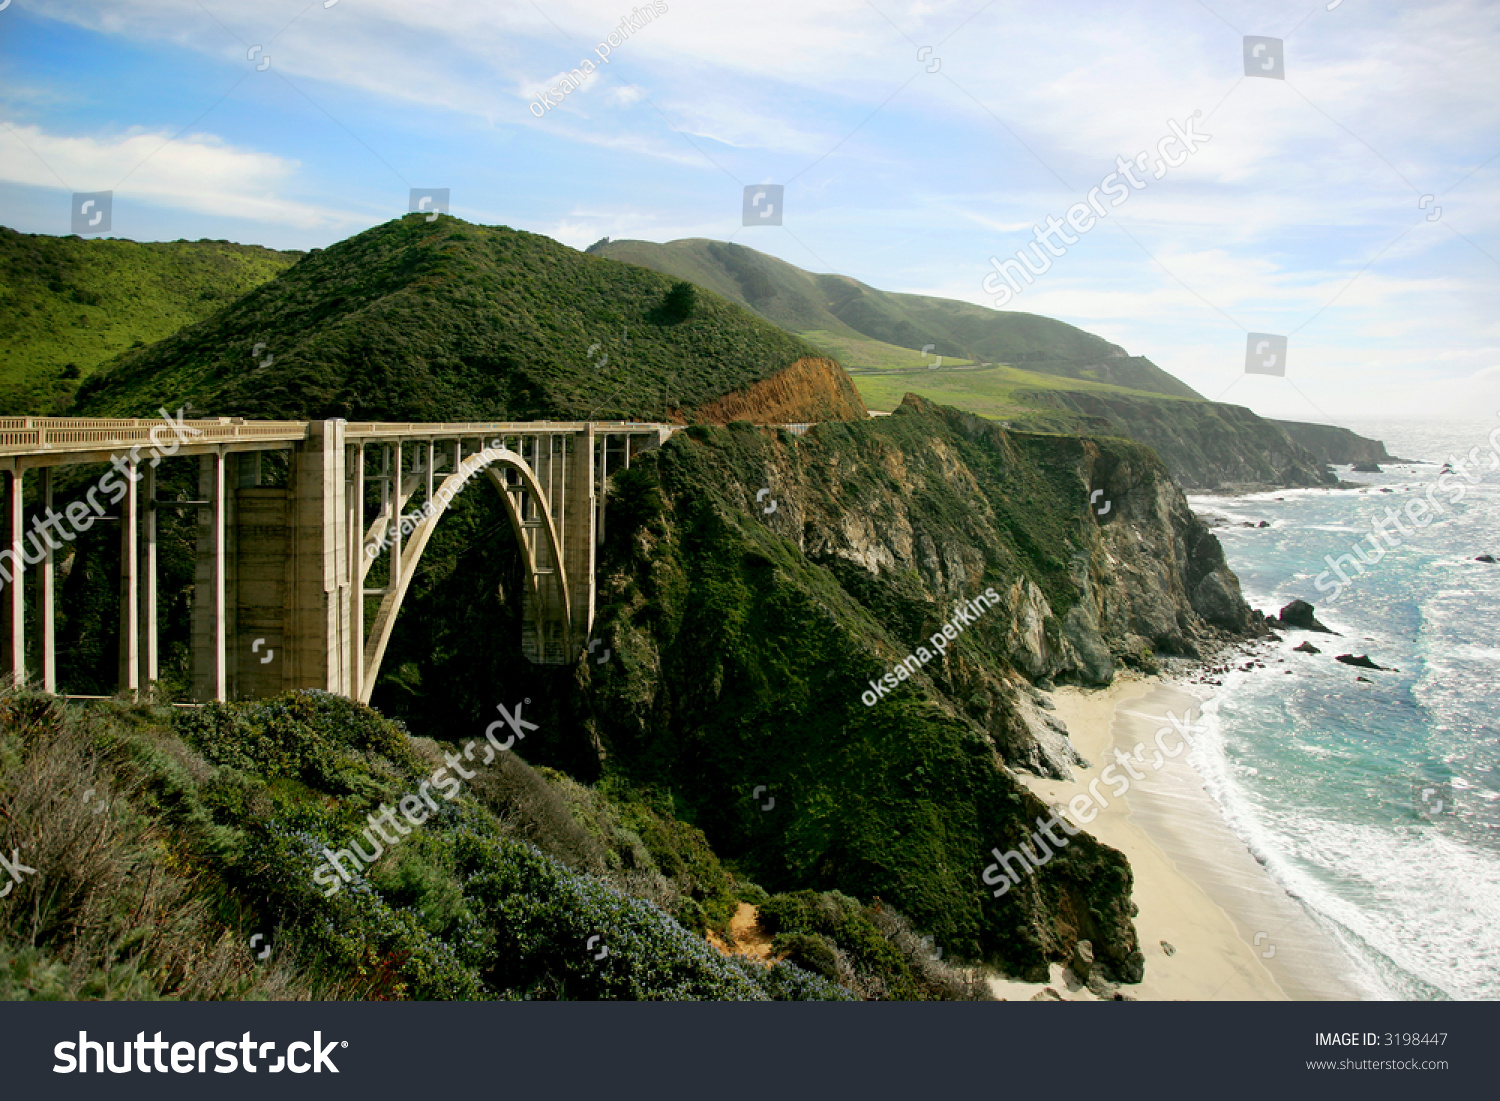 California Highway 101 River Mountain Scenery Drivng Redwood ...